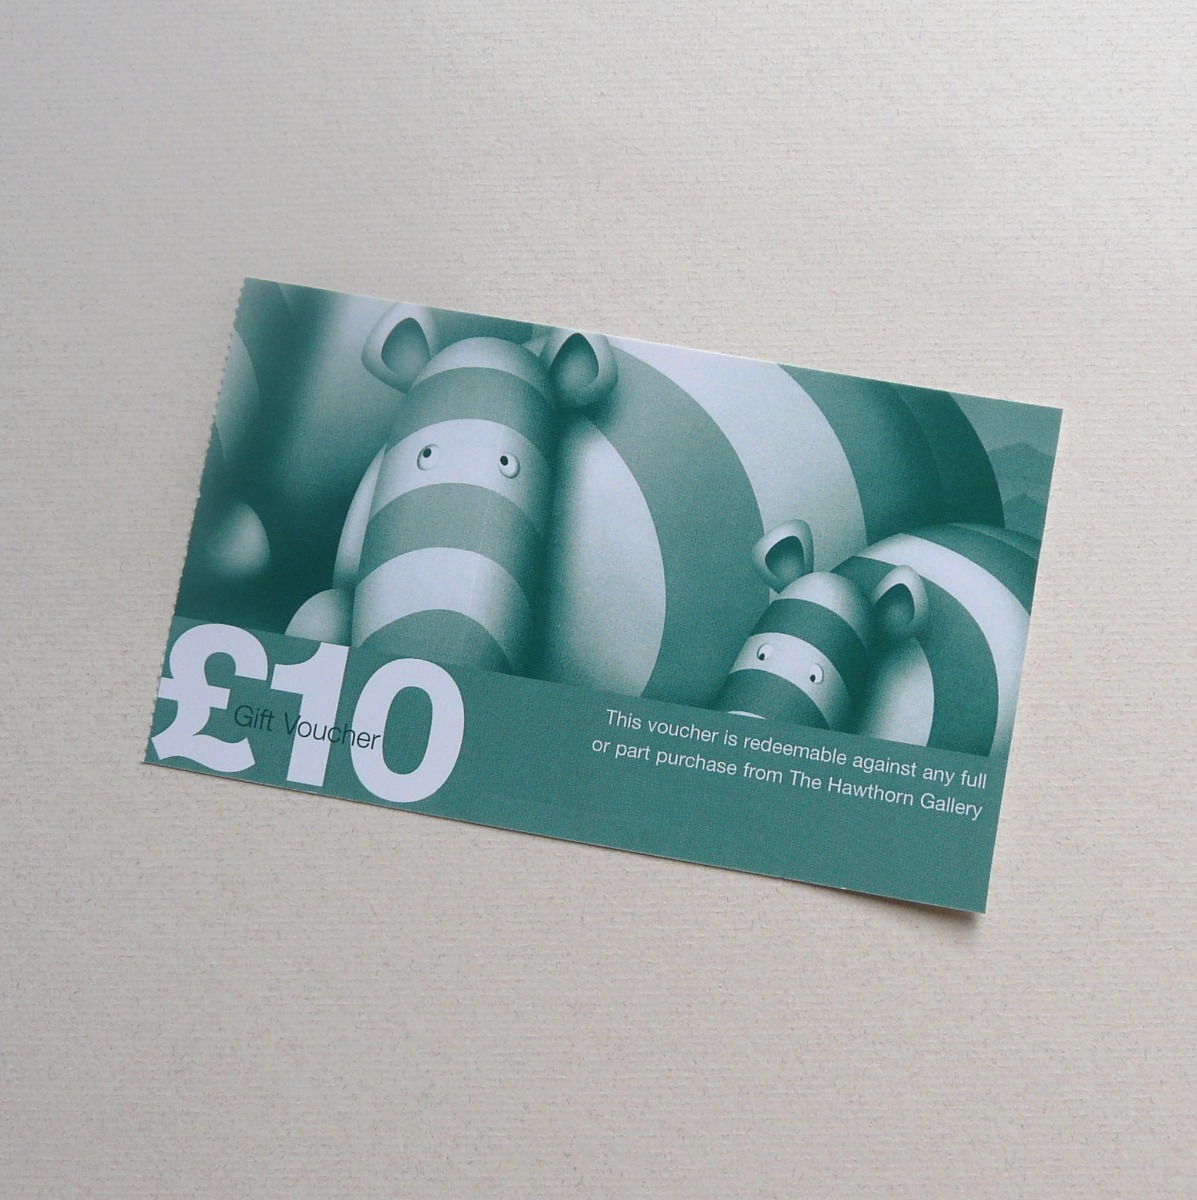 £10 Gift Voucher by The Hawthorn Gallery, Voucher | Gift